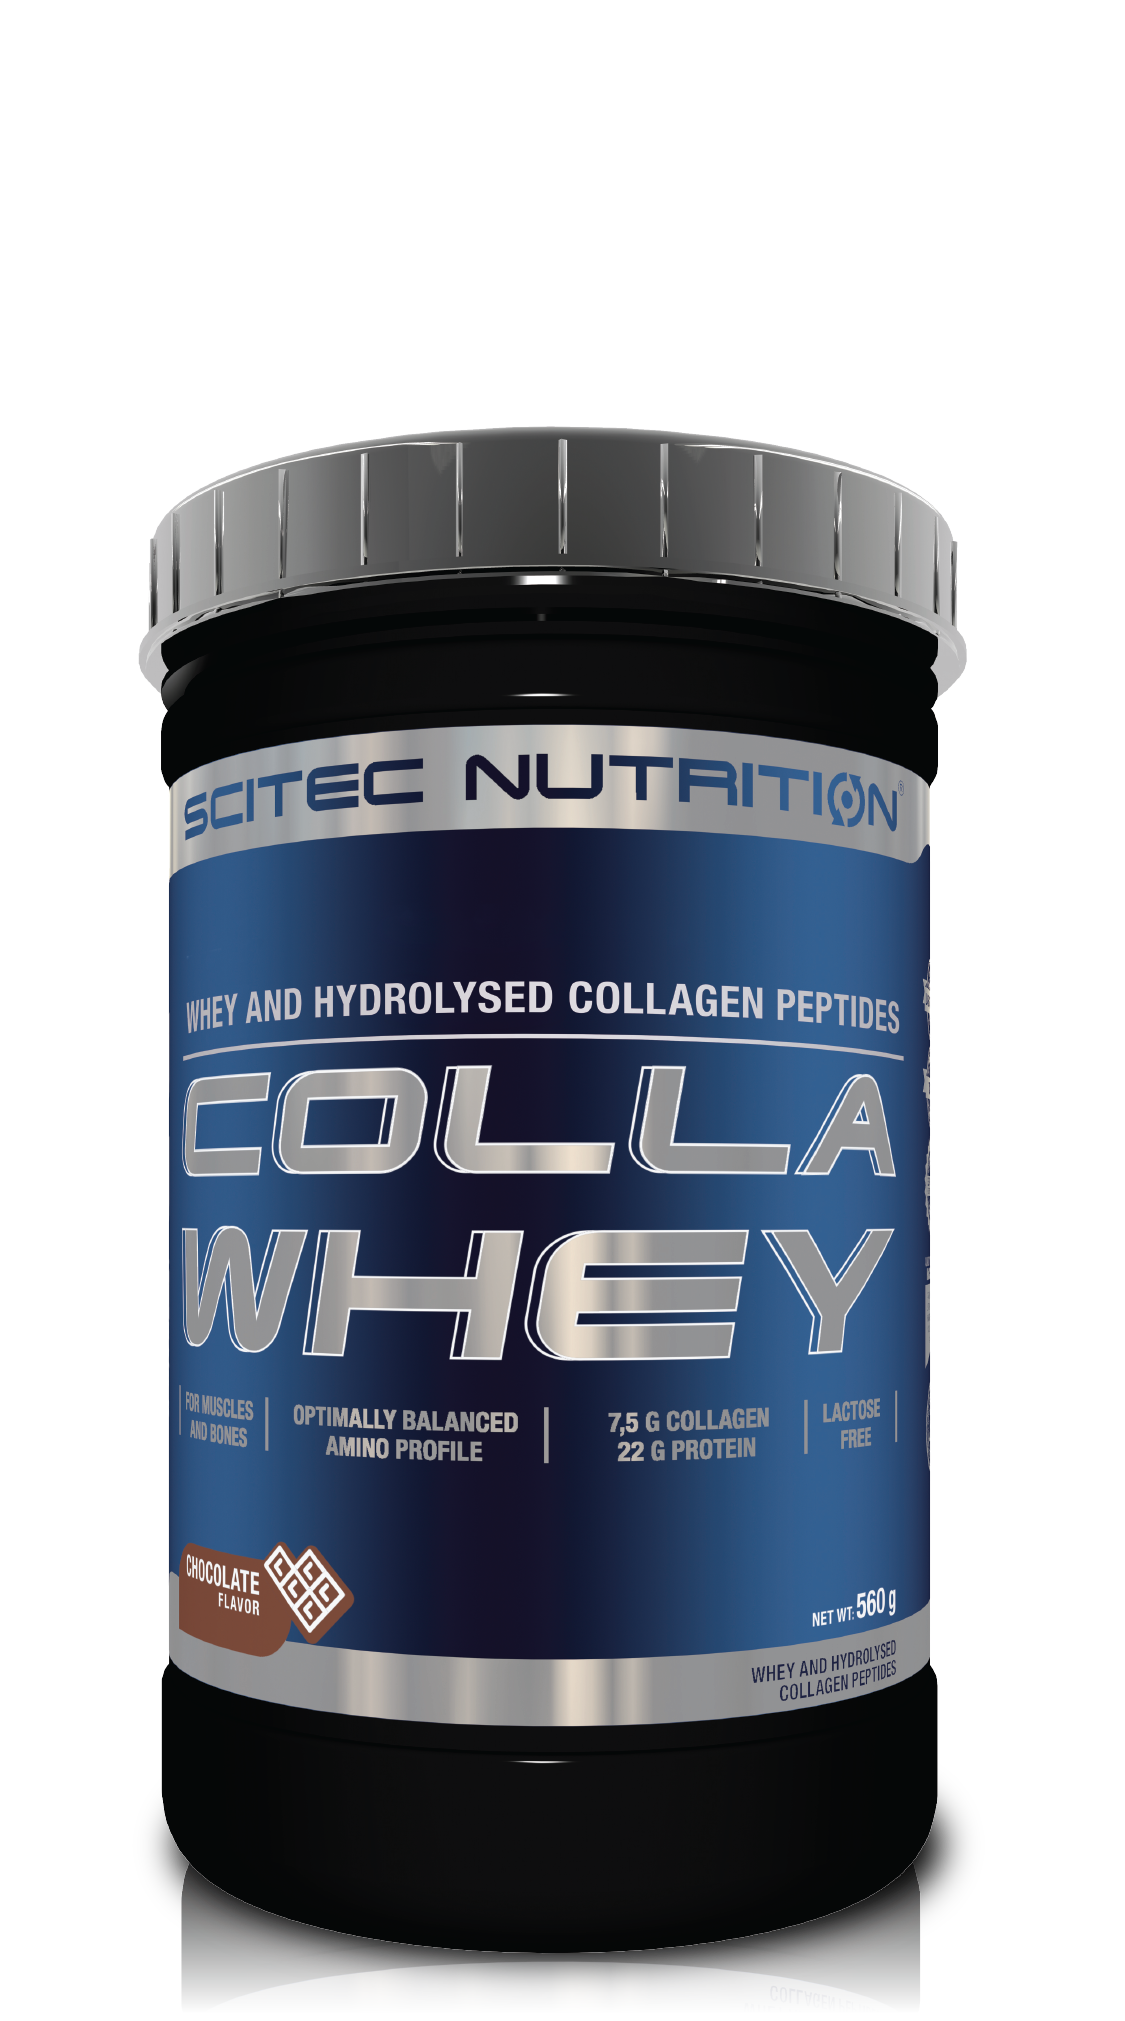 Collawhey (Functional food)